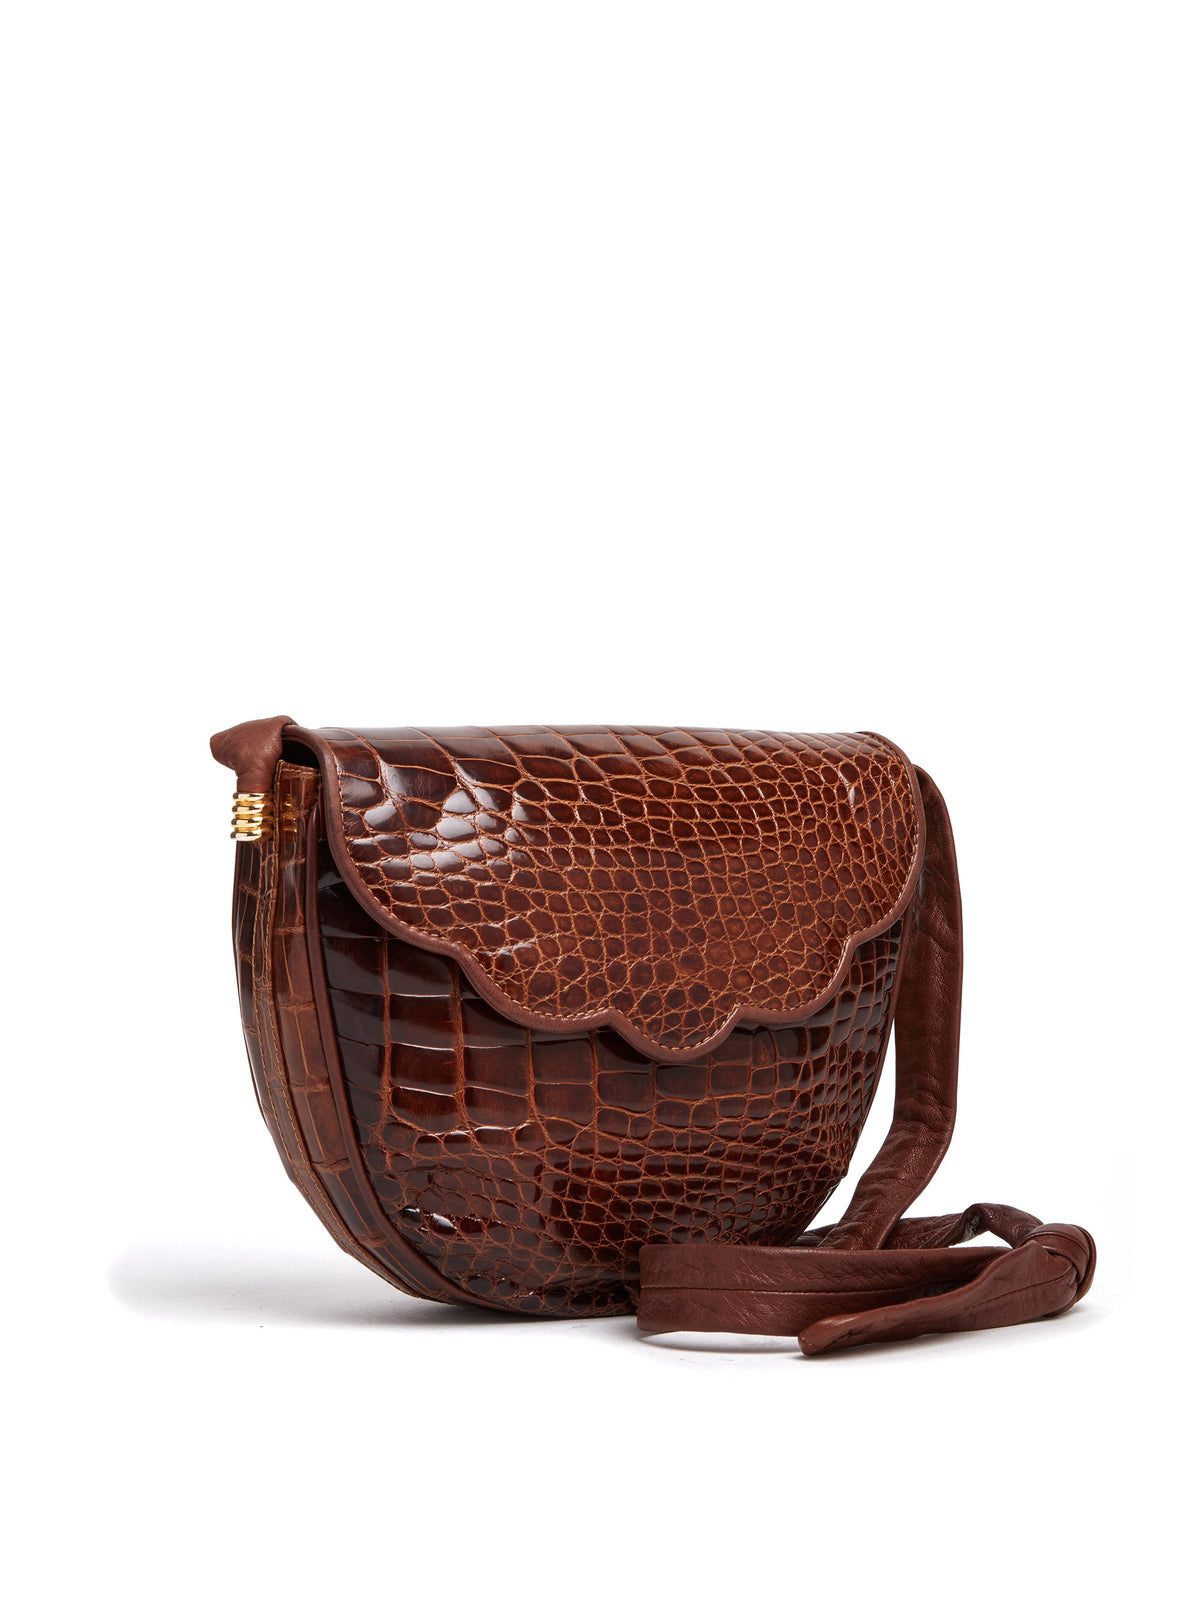 Vintage Crocodile Crossbody Bag